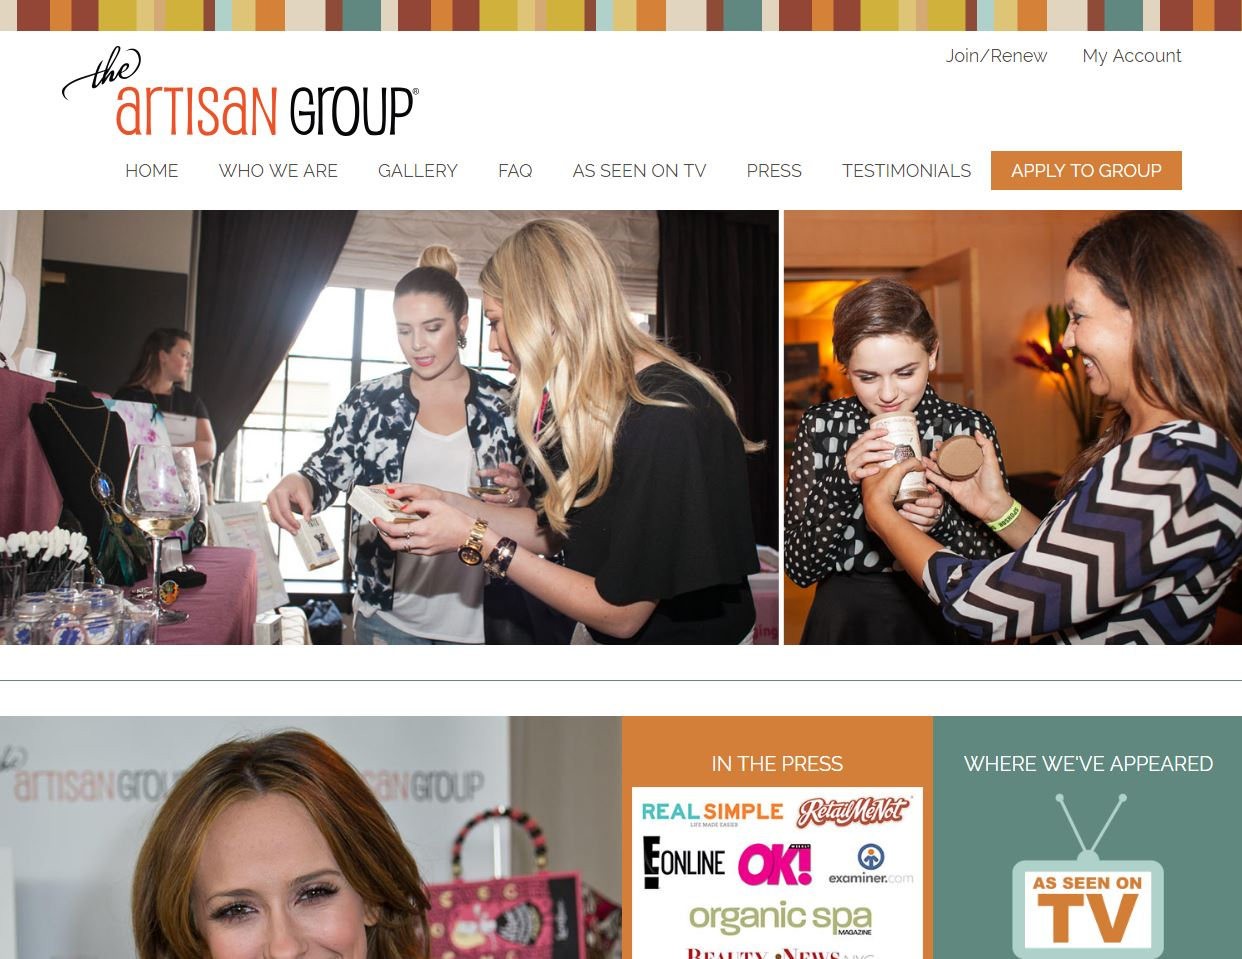 the-artisan-group-website